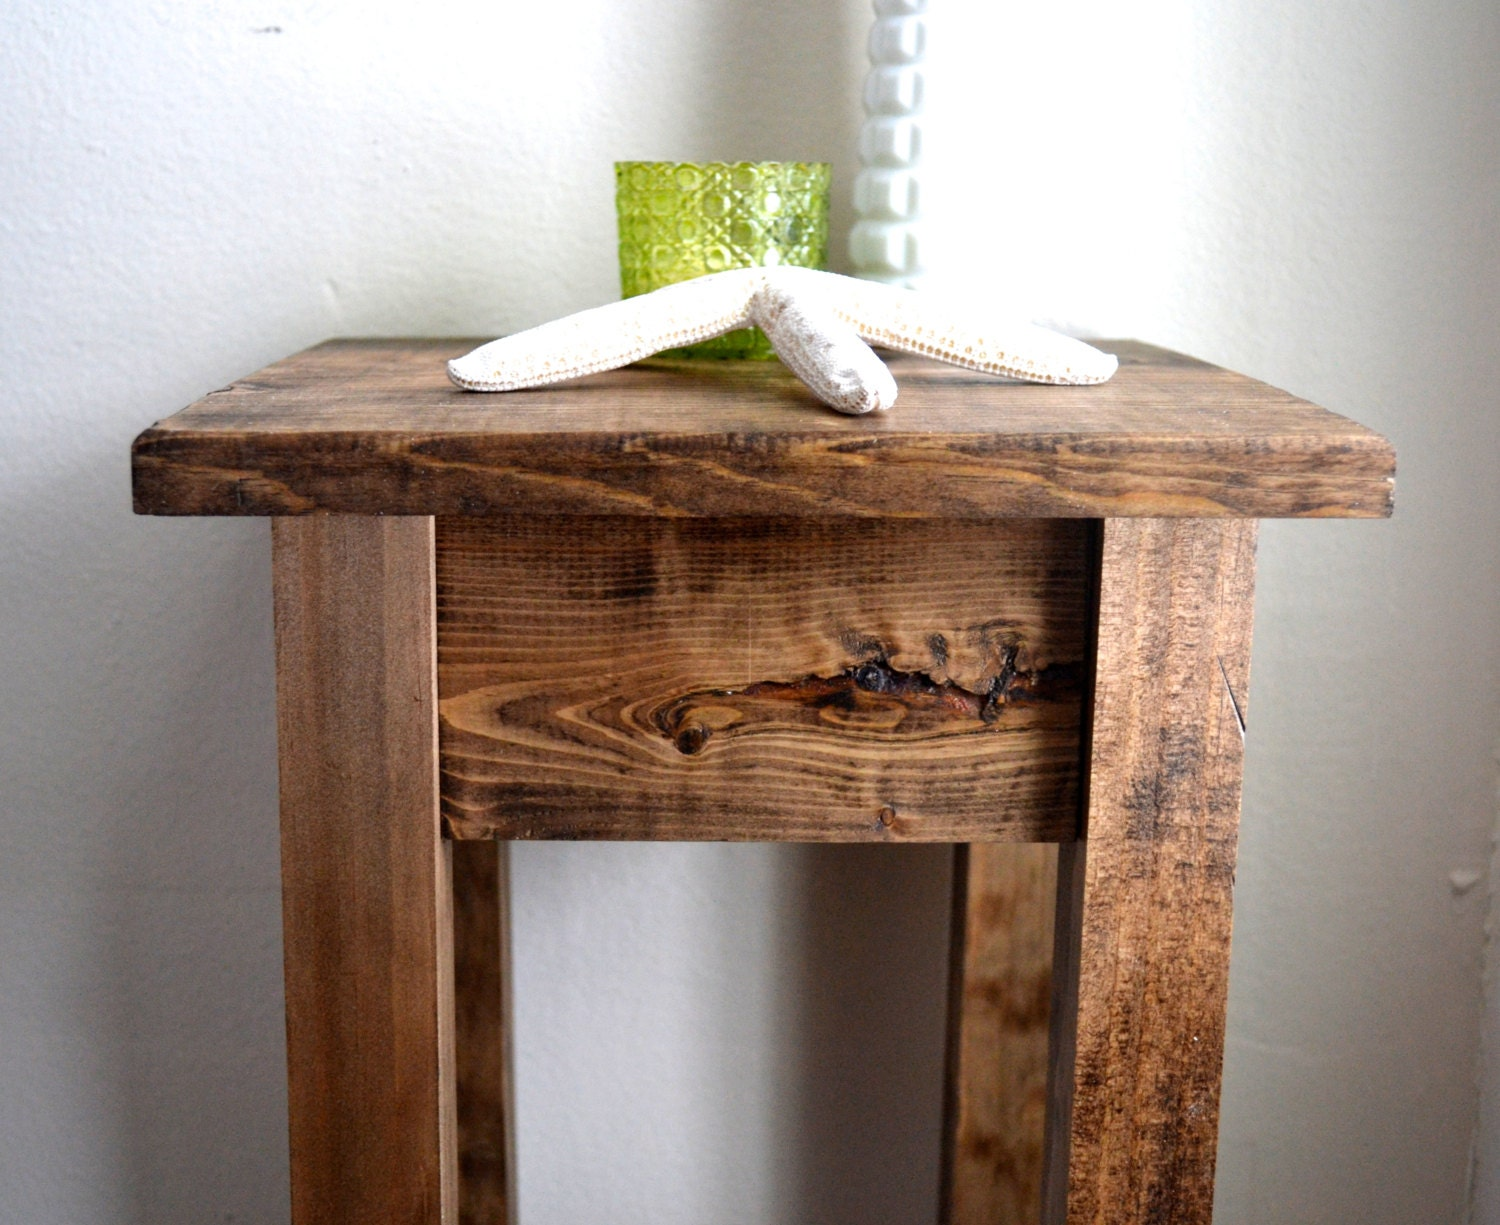 The Tee Dark Walnut Stained Pine Side Table / Nightstand